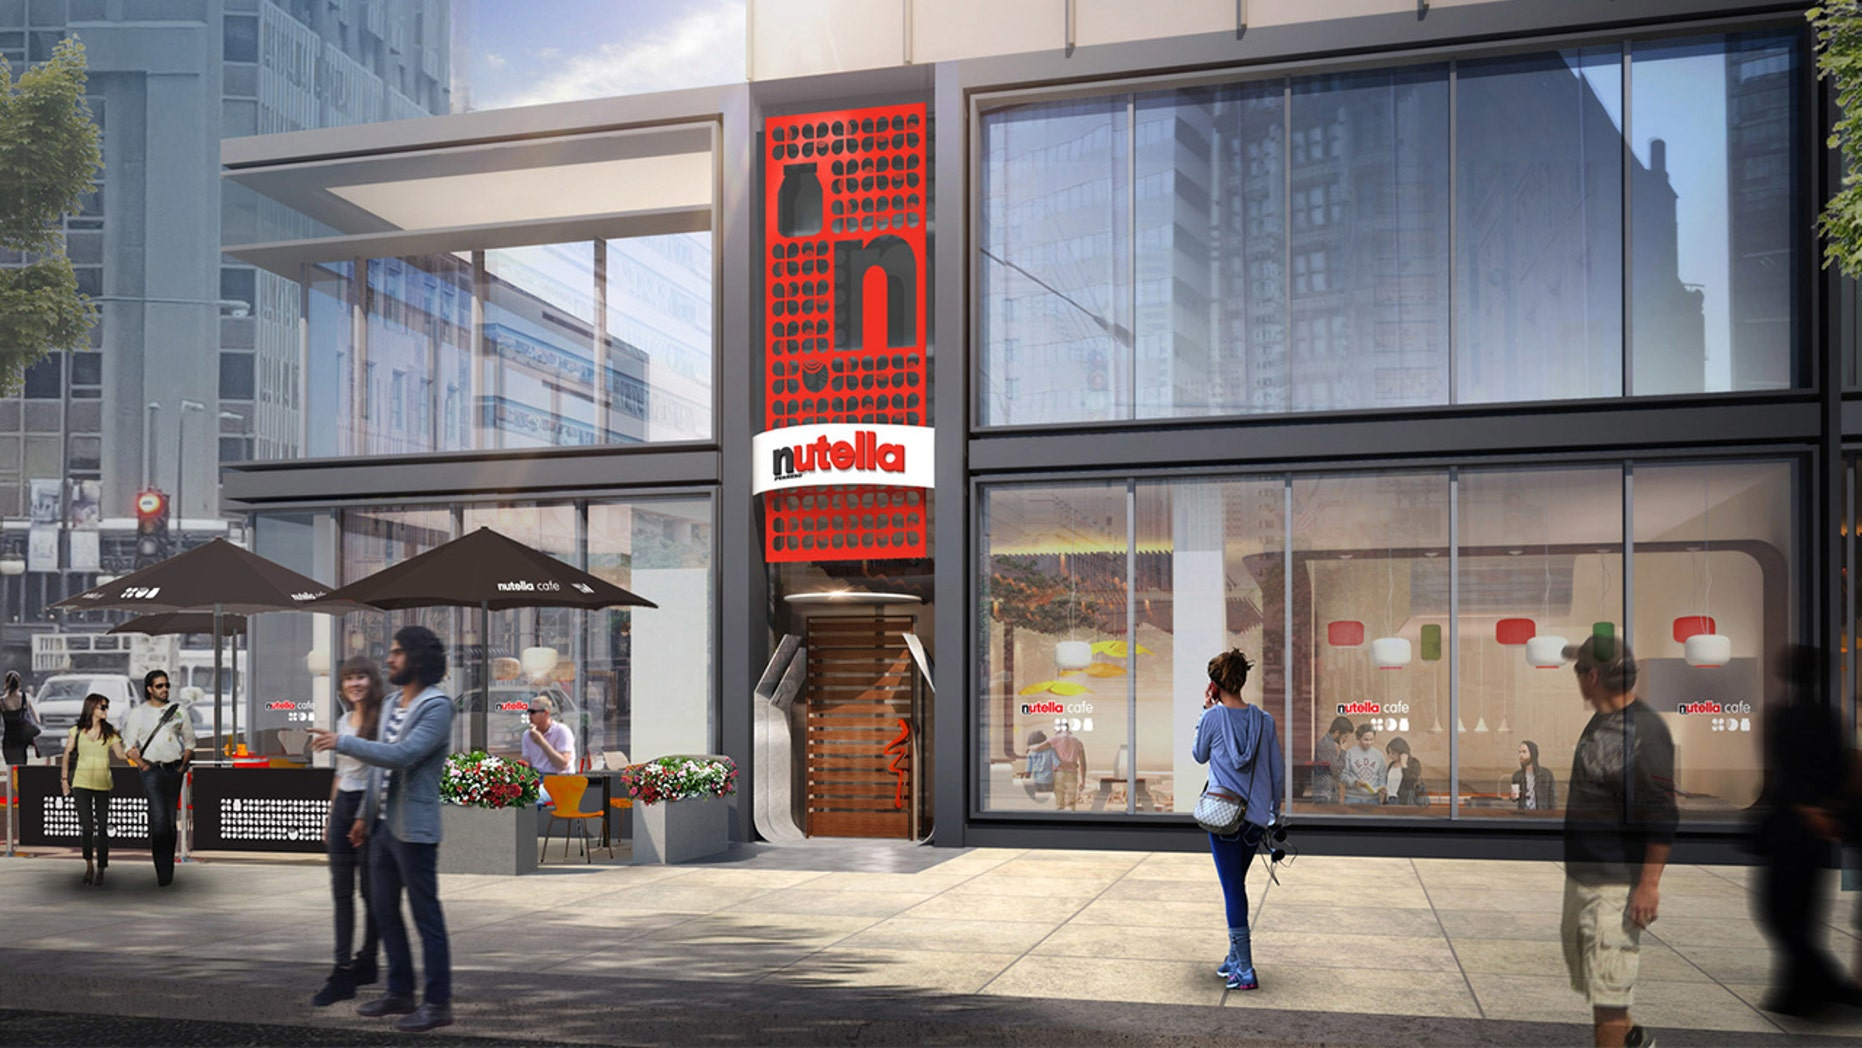 The Nutella café will open this month in Chicago.